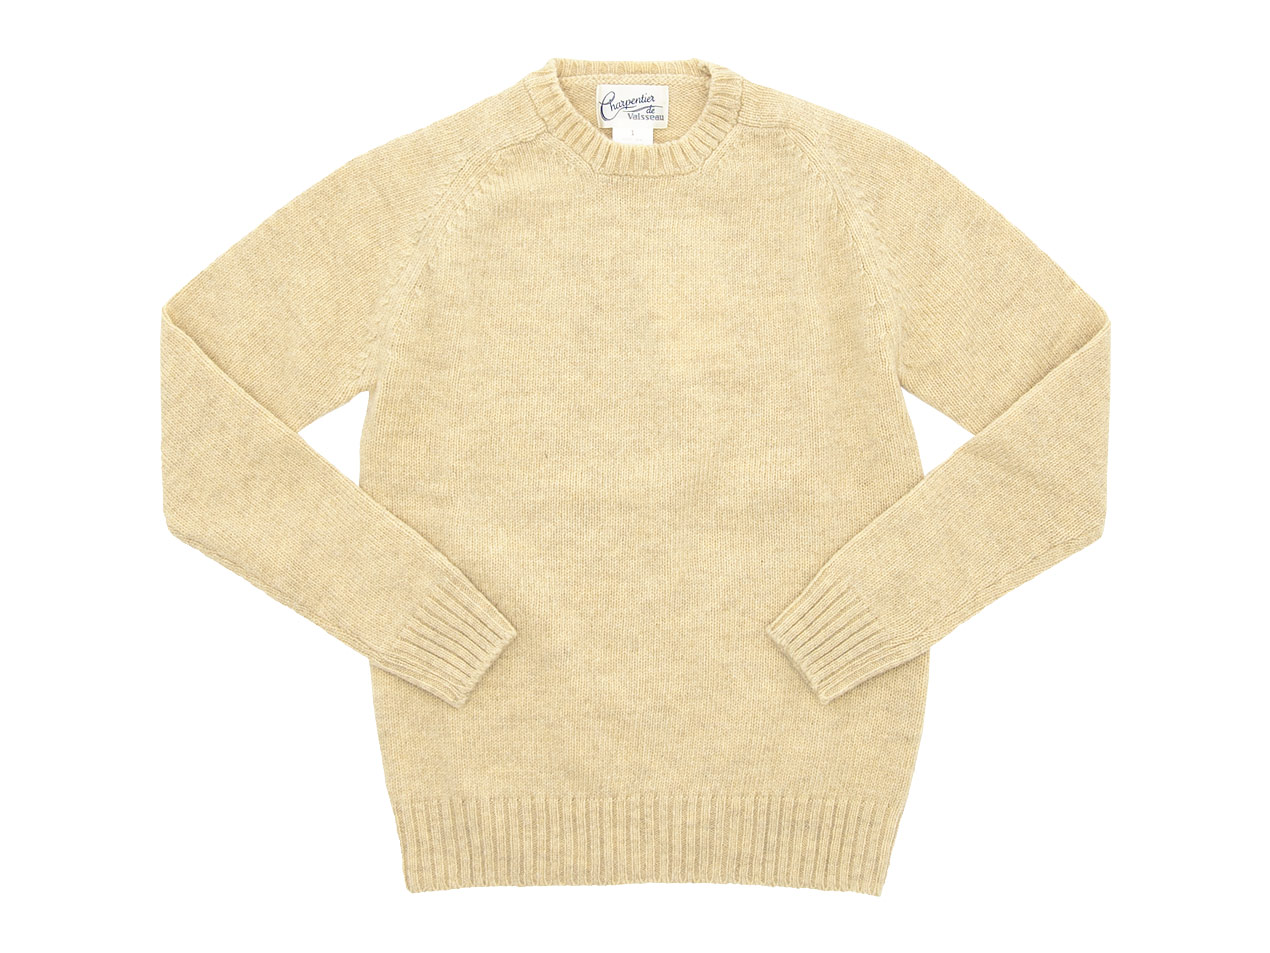 Charpentier de Vaisseau Shetland Crew Neck Knit / Turtle Neck Knit / Middle Stripe Long Sleeve Tee